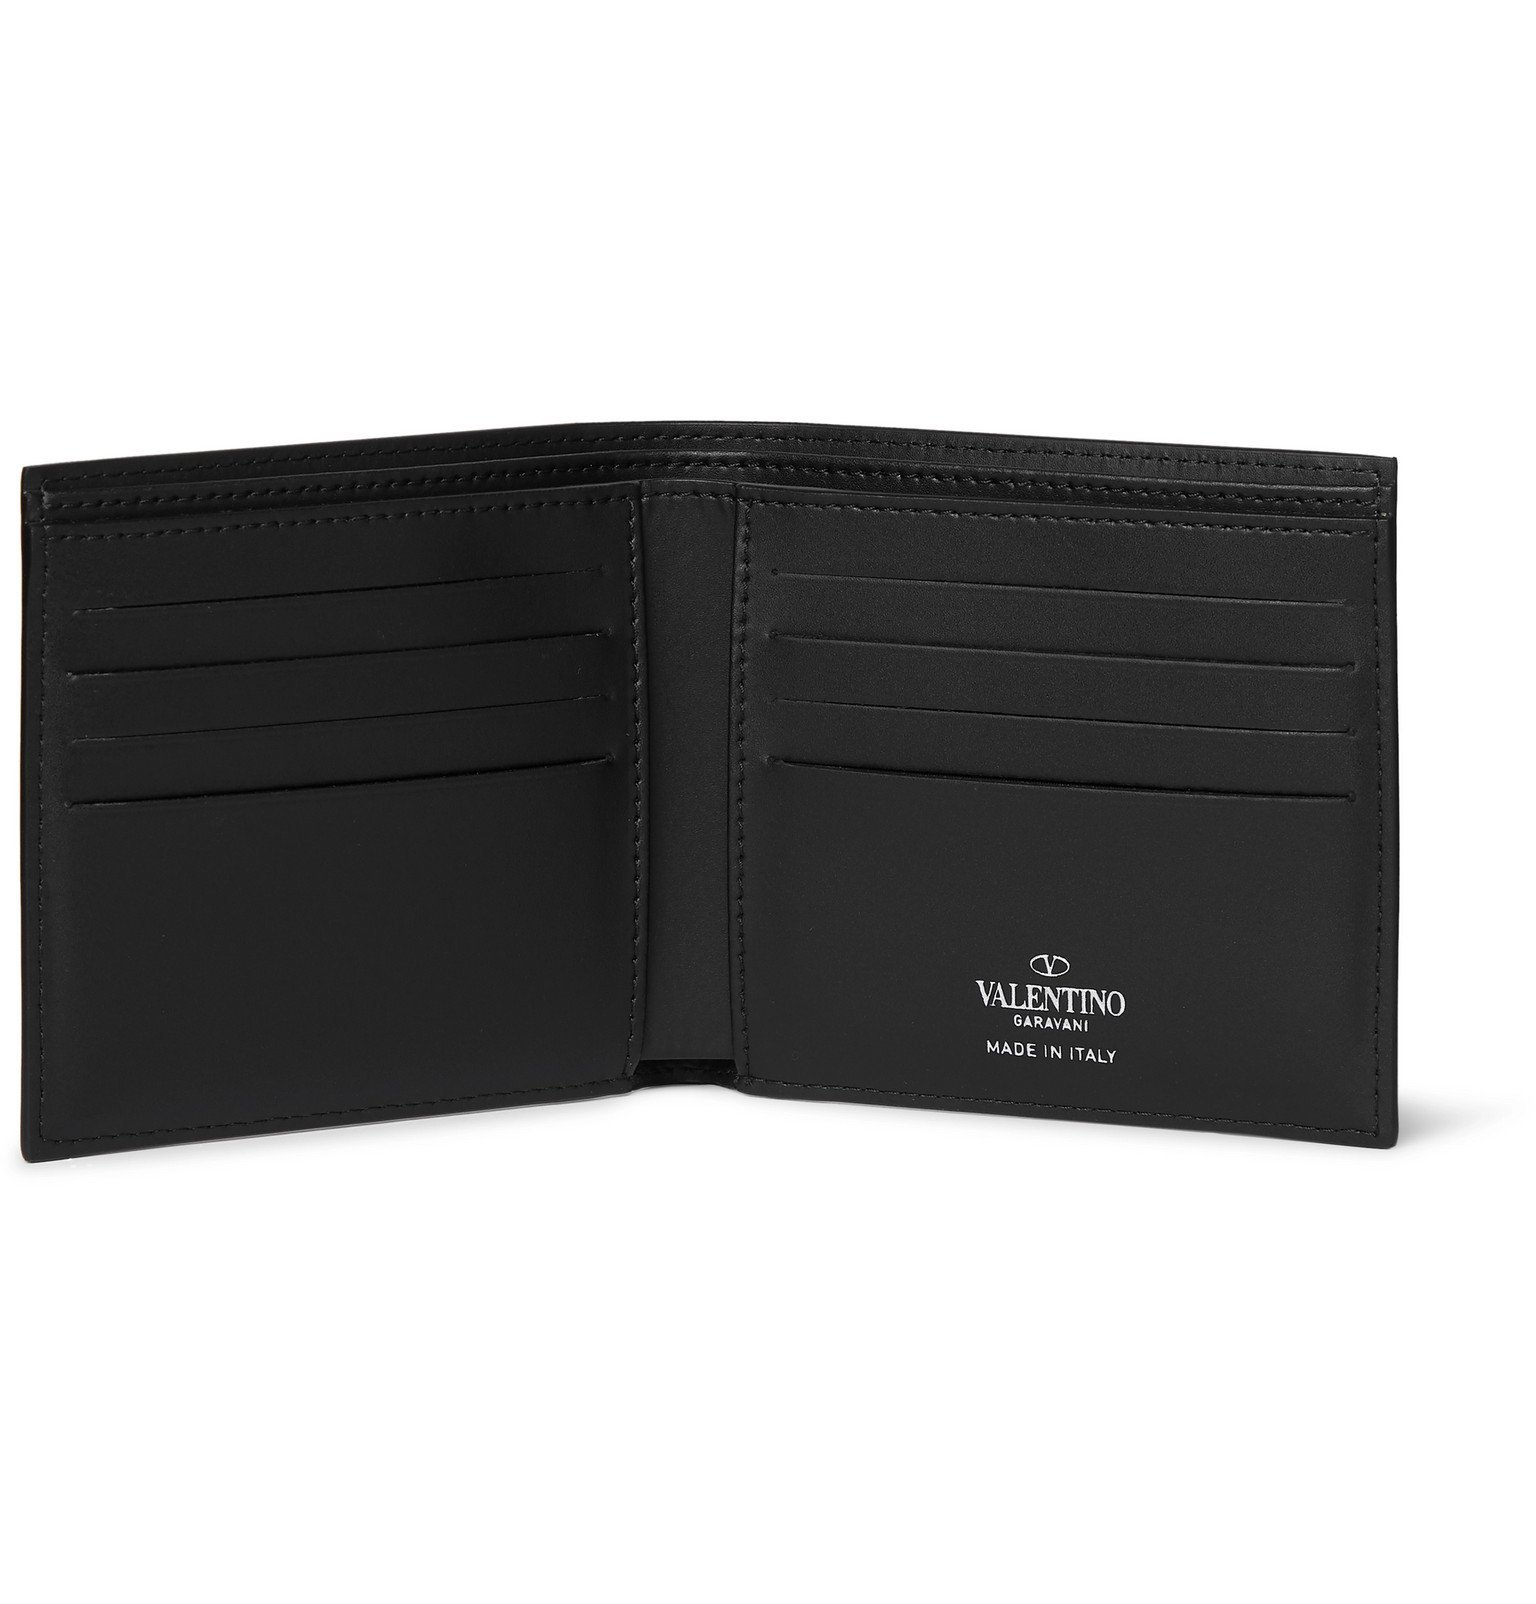 Valentino - Valentino Garavani Logo-Print Leather Billfold Wallet - Black